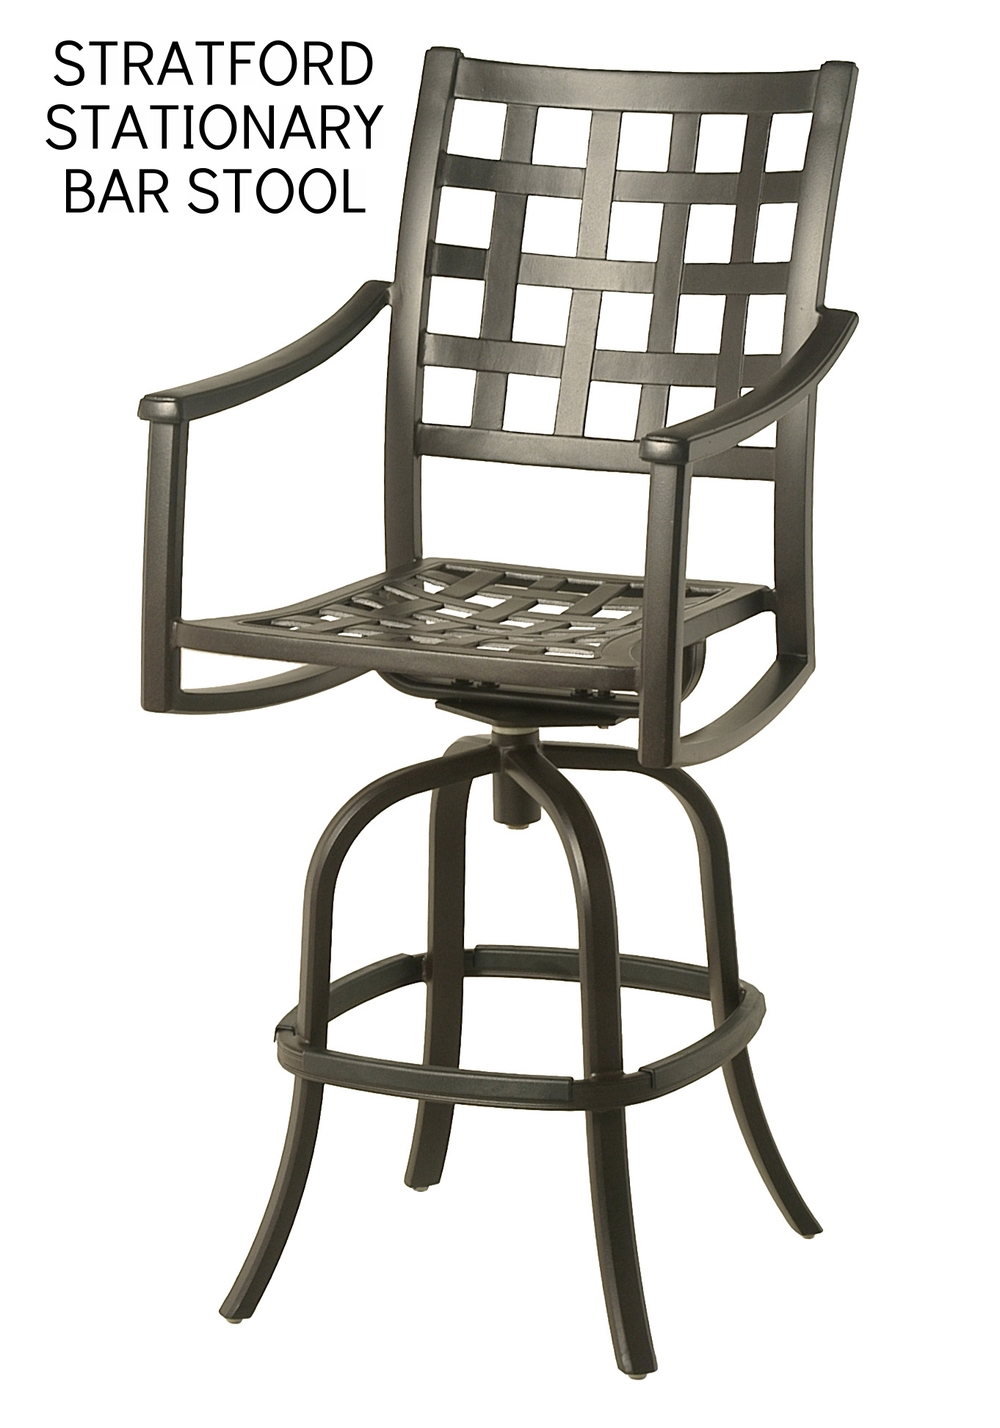 Stratford Swivel Bar Stool.jpg